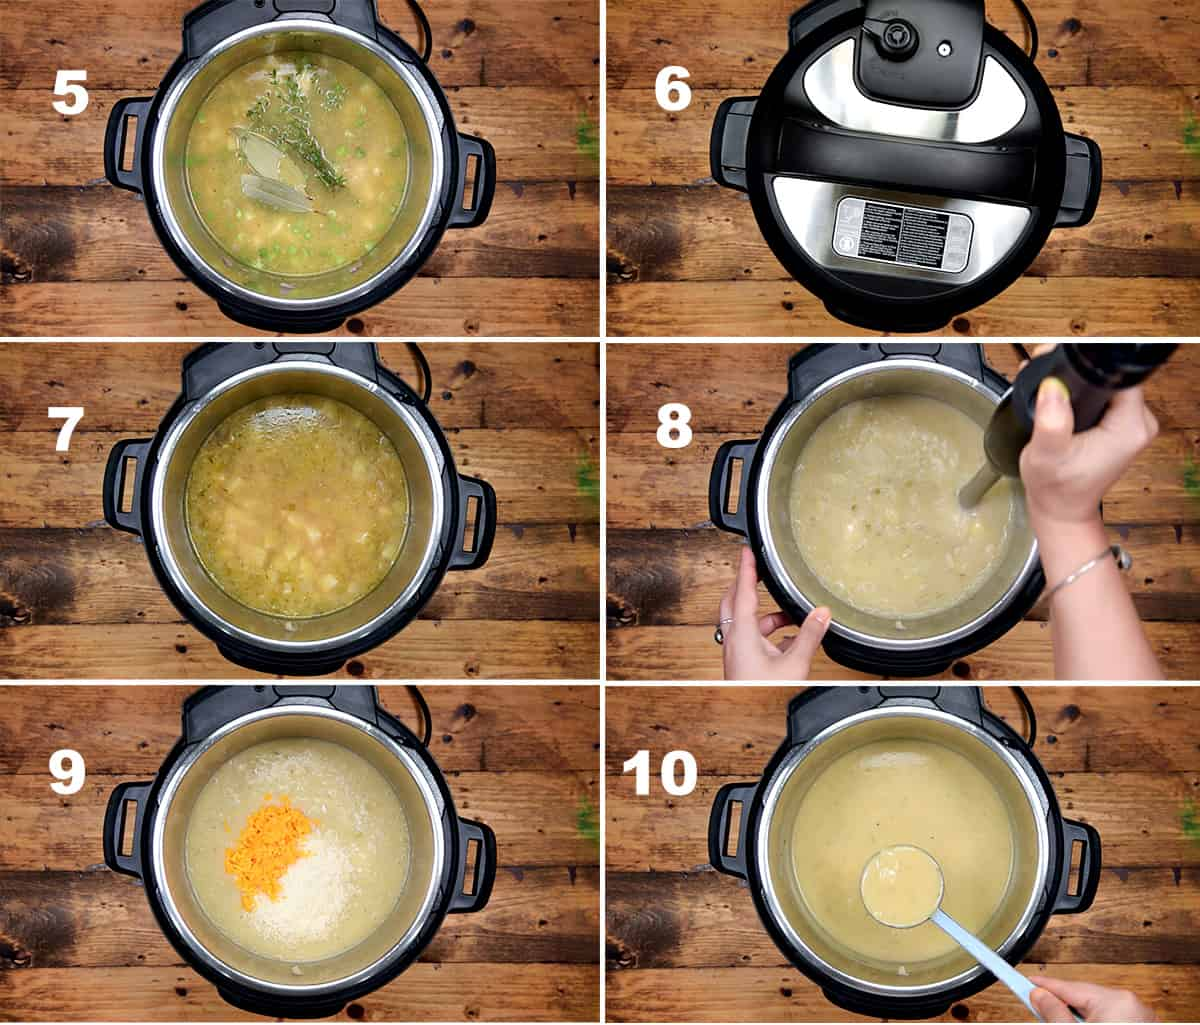 Step by step picture collage showing how to make potato soup in Instant Pot.